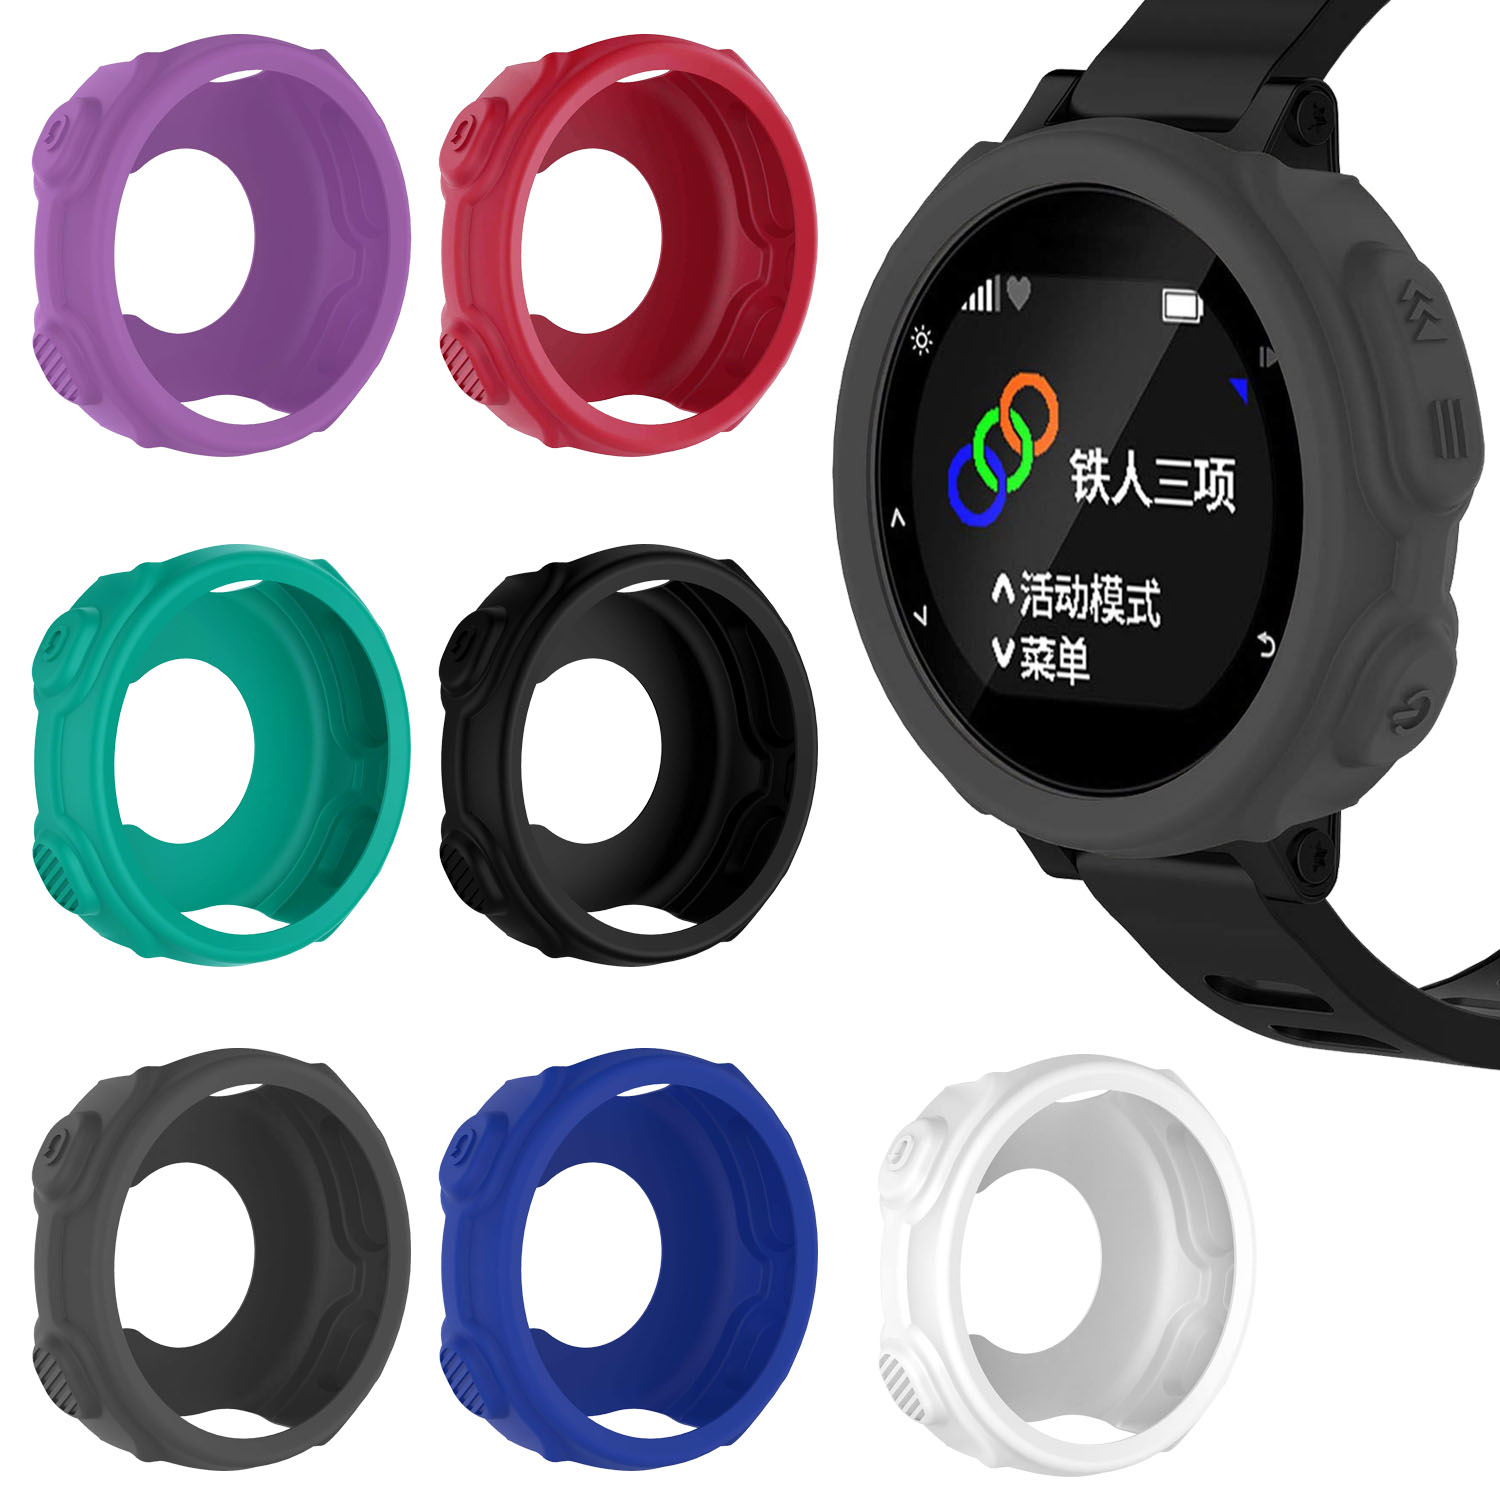 Silicone Skin Case Cover for Garmin Forerunner 235 735XT Watch Teal